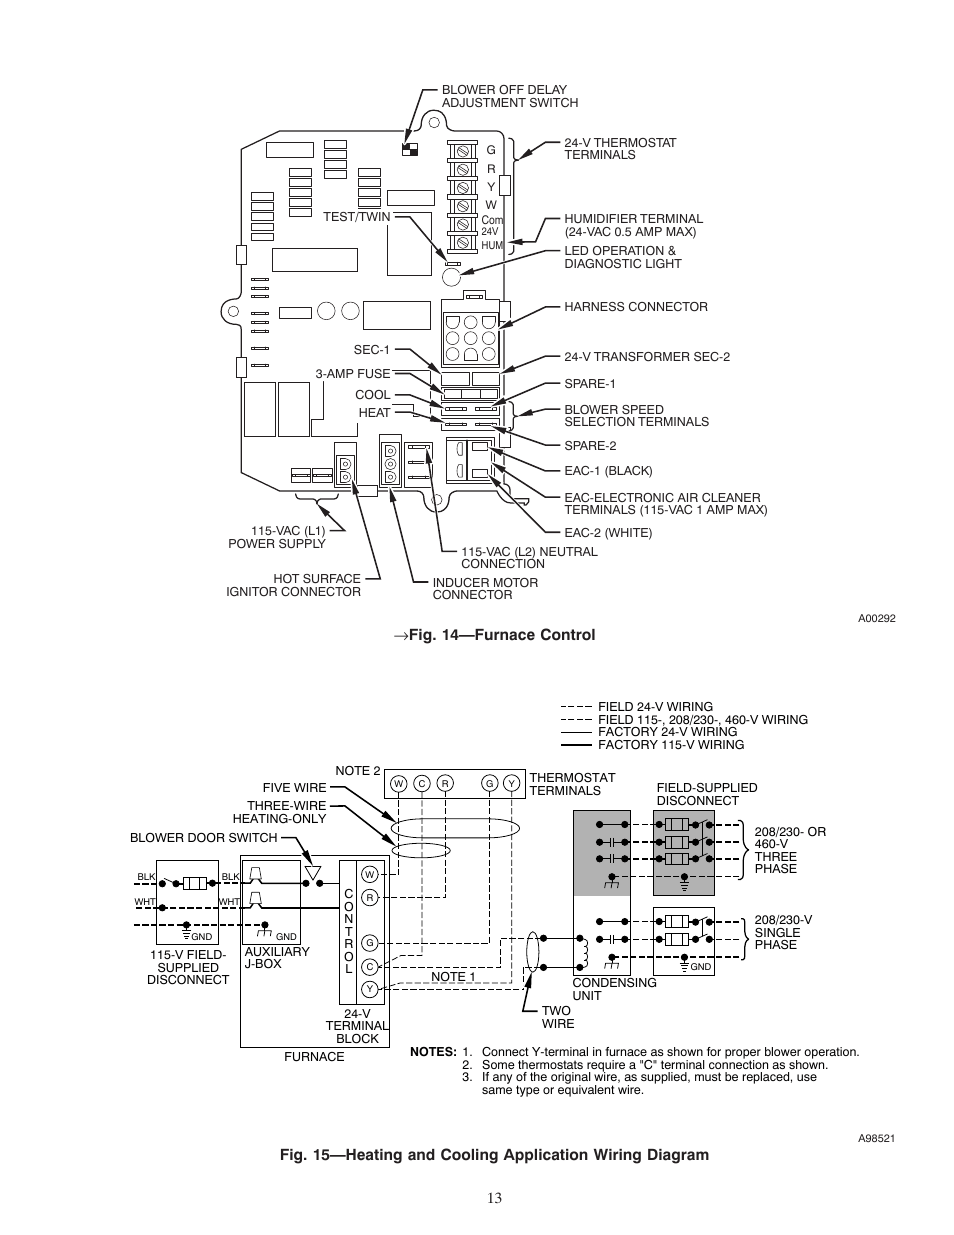 General Electric Furnace Wiring Diagrams Ge Blower Schematic Diagram Eb158 Gas